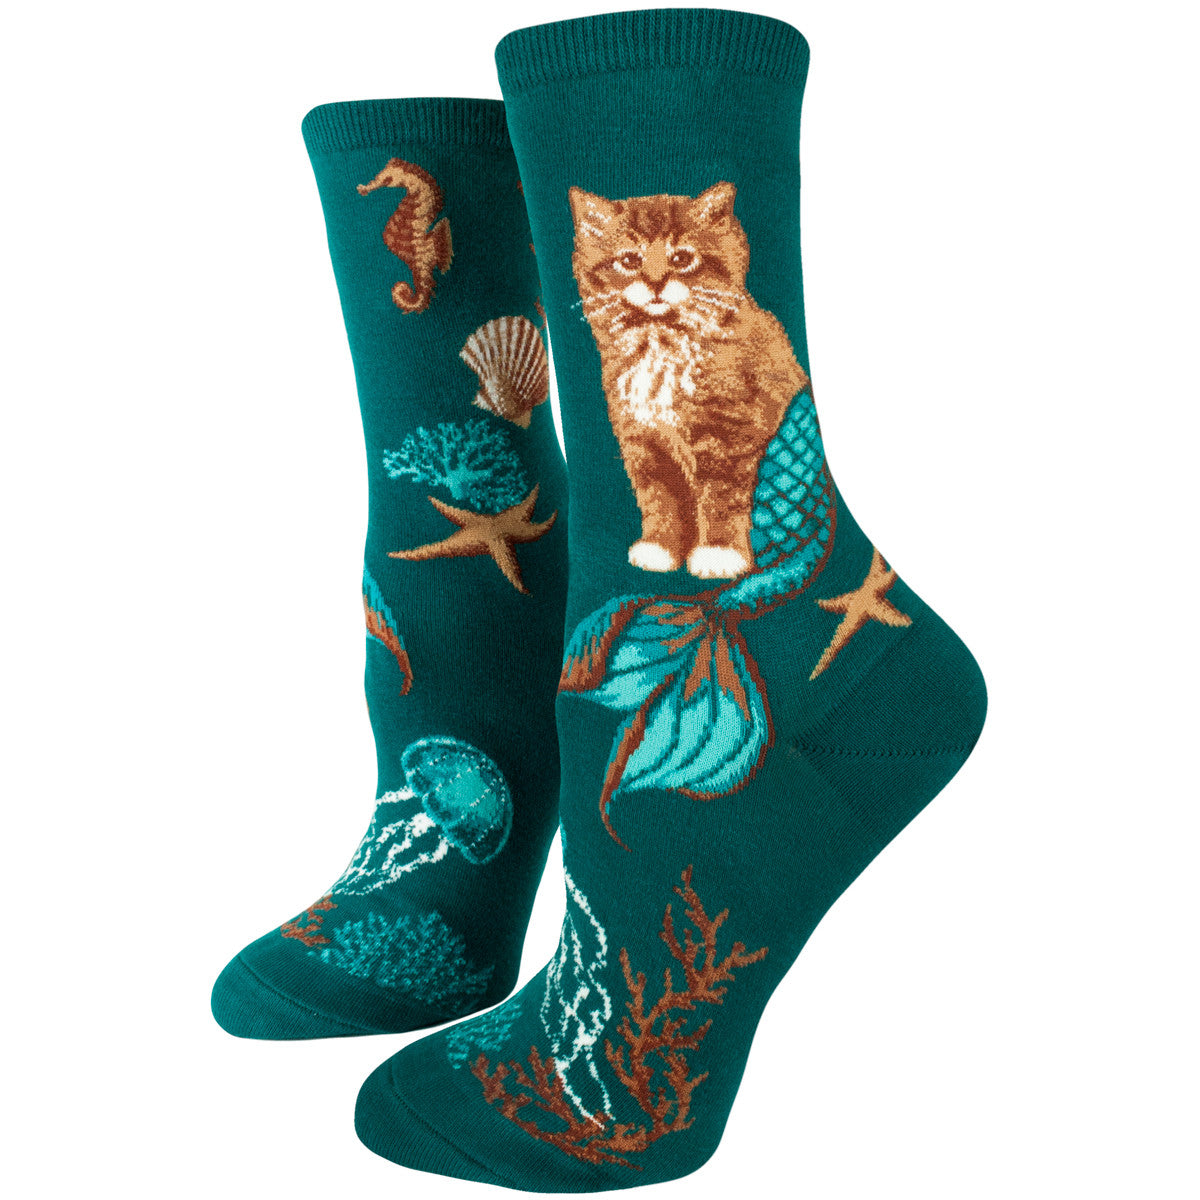 A cute sock if there ever was one, ModSocks' Purrmaid socks featuring cat mermaids are adorable!